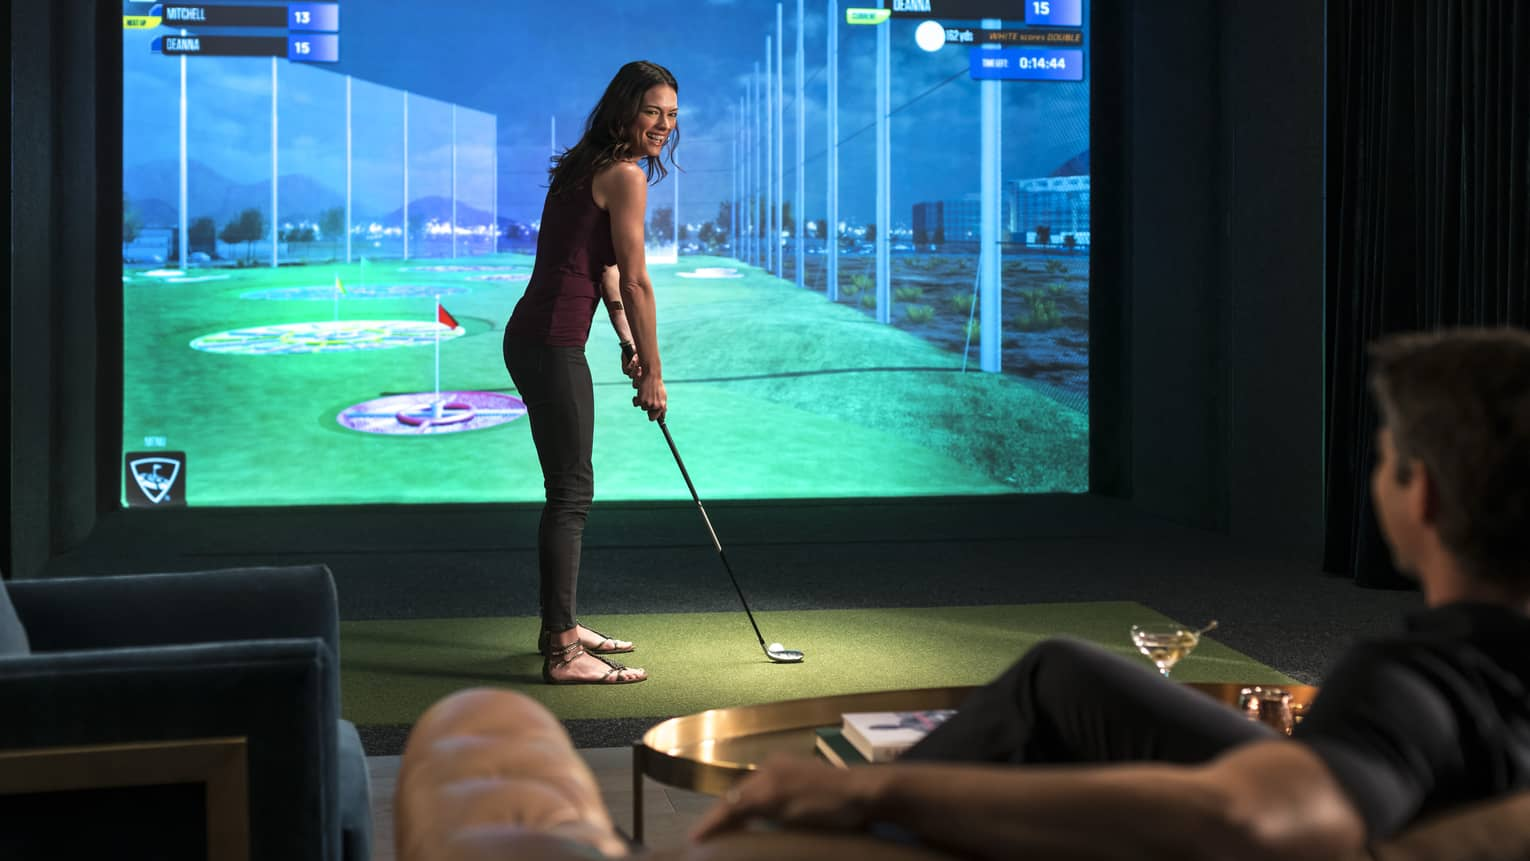 A couple playing a golf simulator and enjoying a drink.